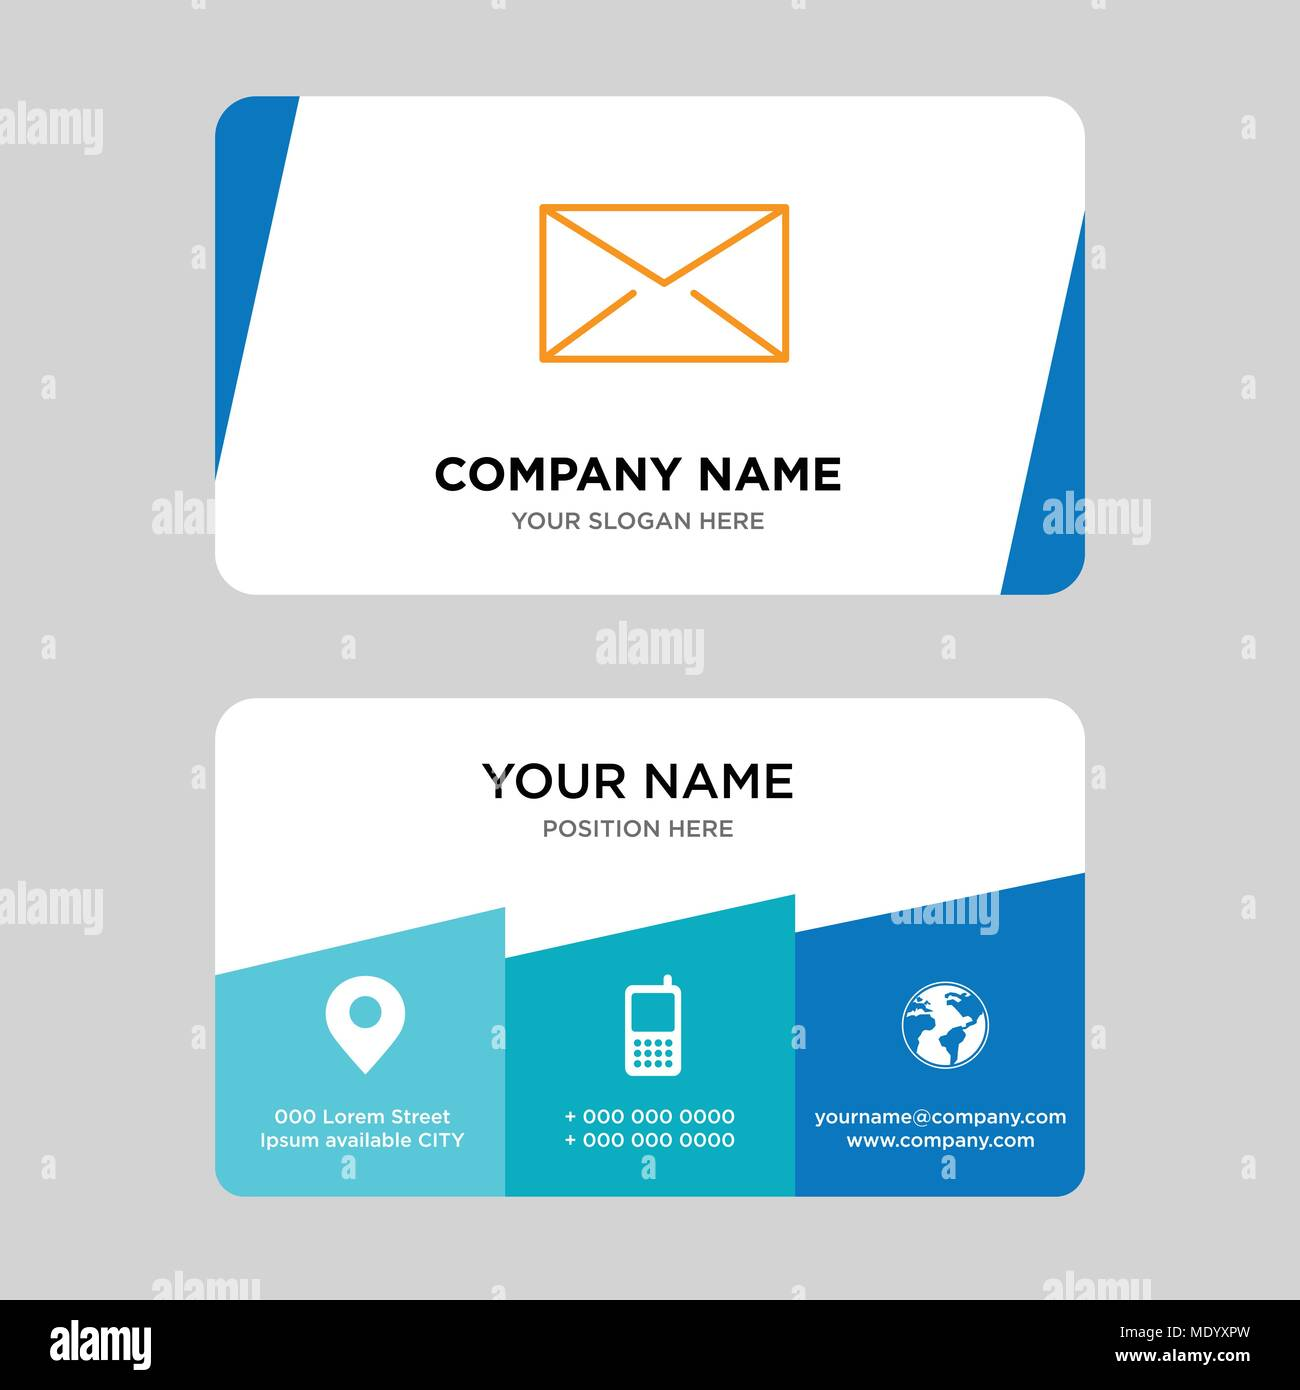 Closed Envelope Business Card Design Template Visiting For Your